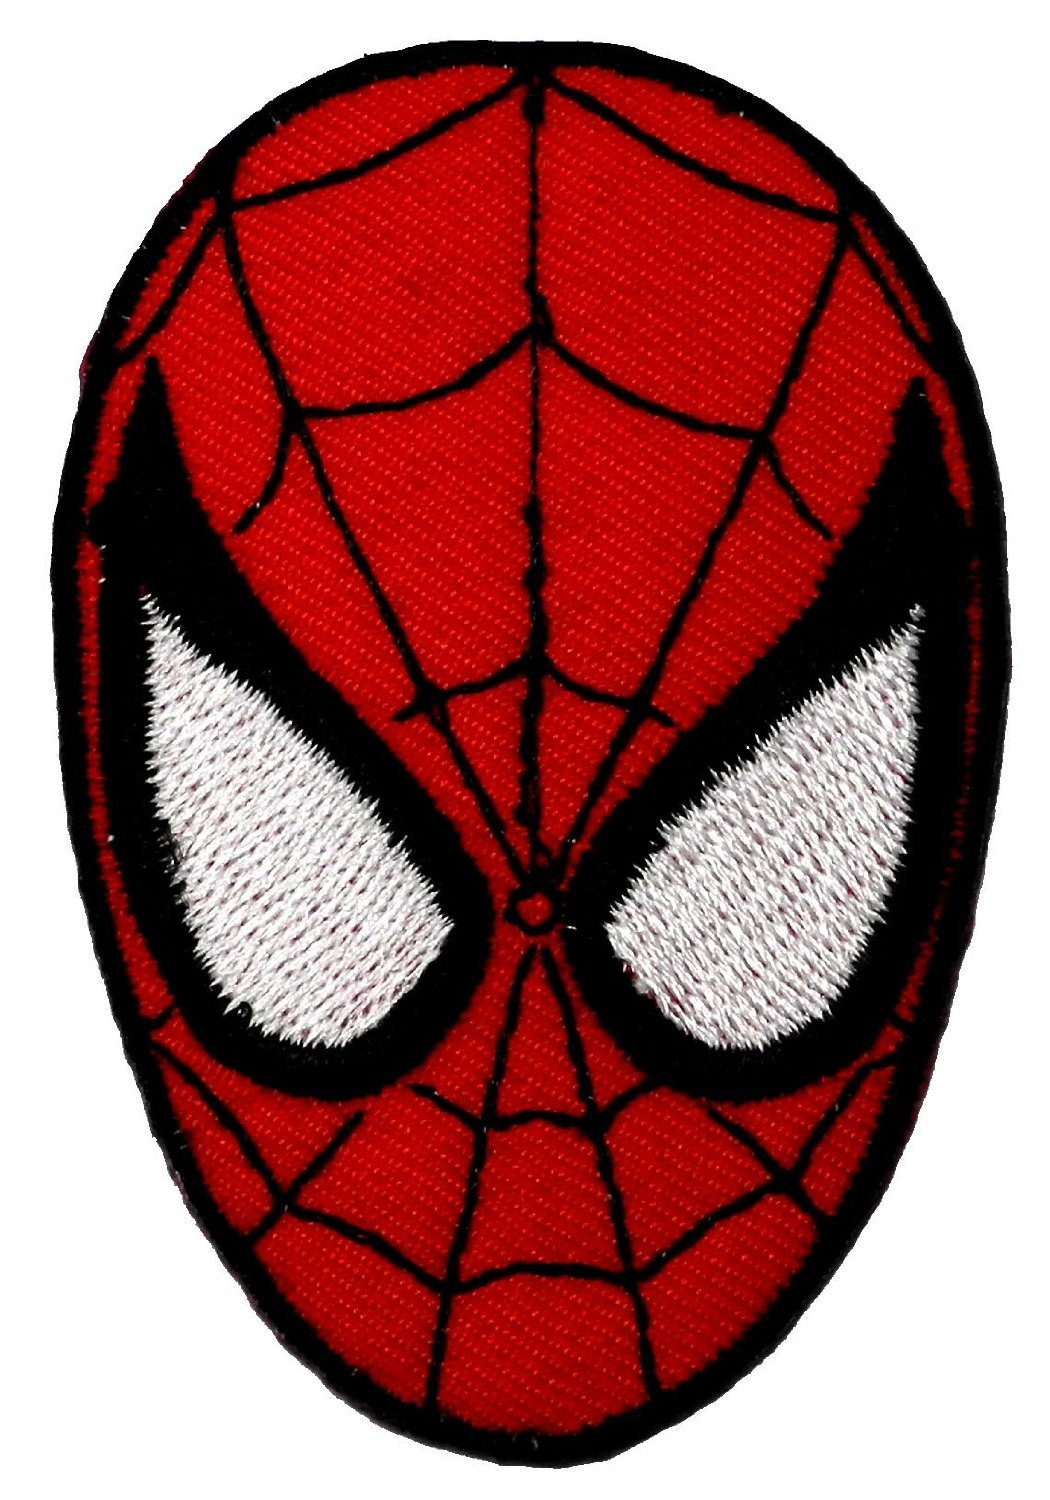 Full Drill Diamond Painting Spiderman by Number Kits,5D DIY Diamond Embroidery Crystal Rhinestone Cross Stitch Mosaic Paintings Arts Craft for Home Wall Decor 12X16inch//30X40CM